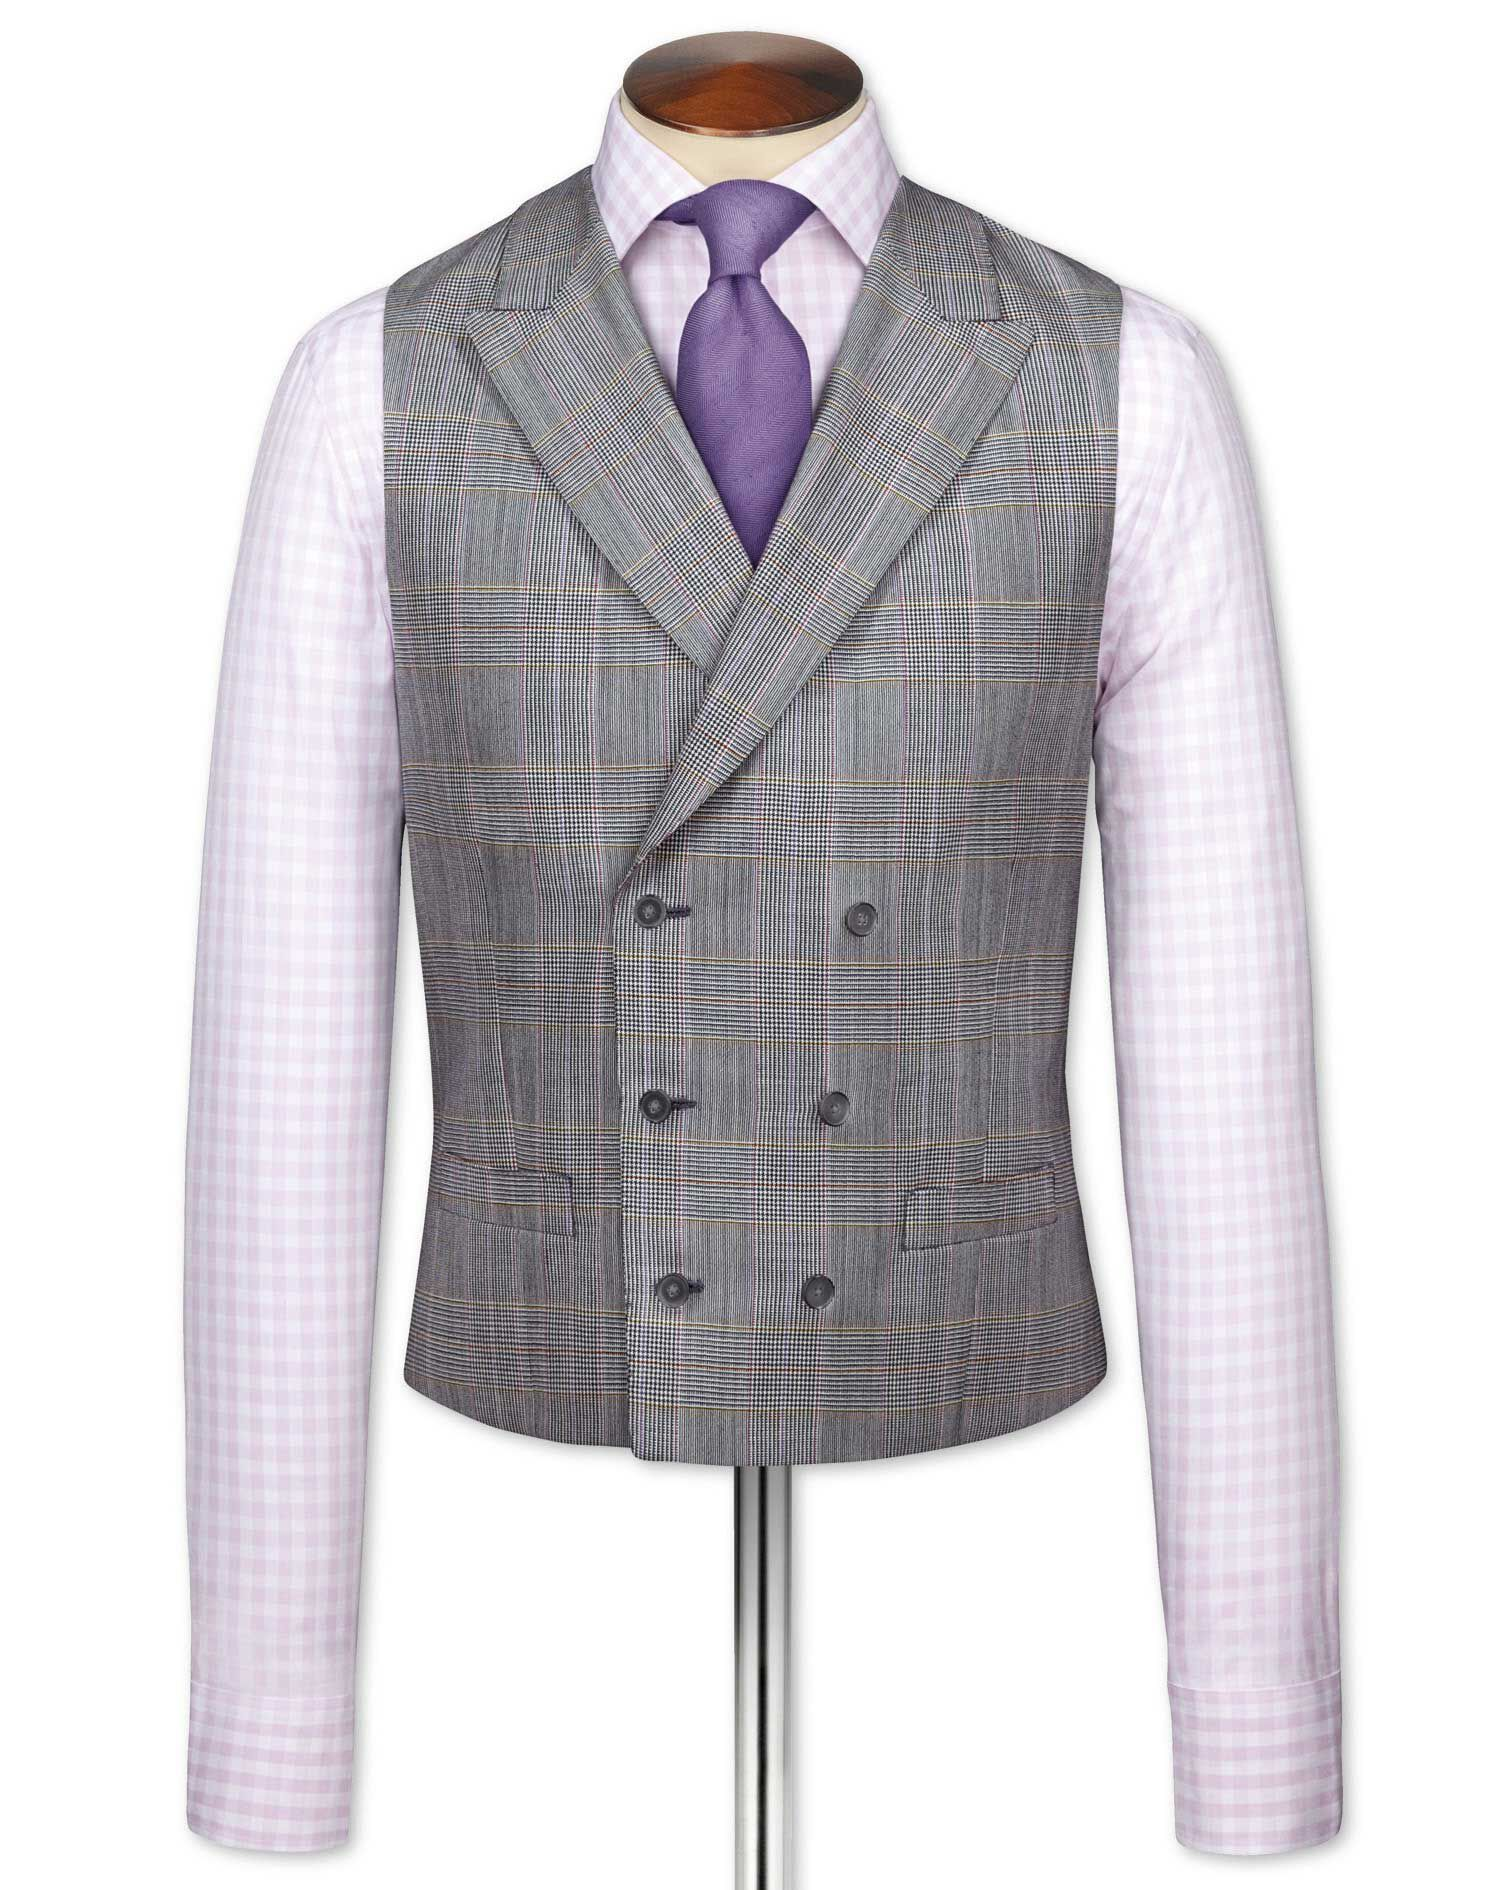 1920s Mens Clothing Charles Tyrwhitt Grey Check British Panama Luxury Suit Wool Waistcoat Size w40 £50.00 AT vintagedancer.com